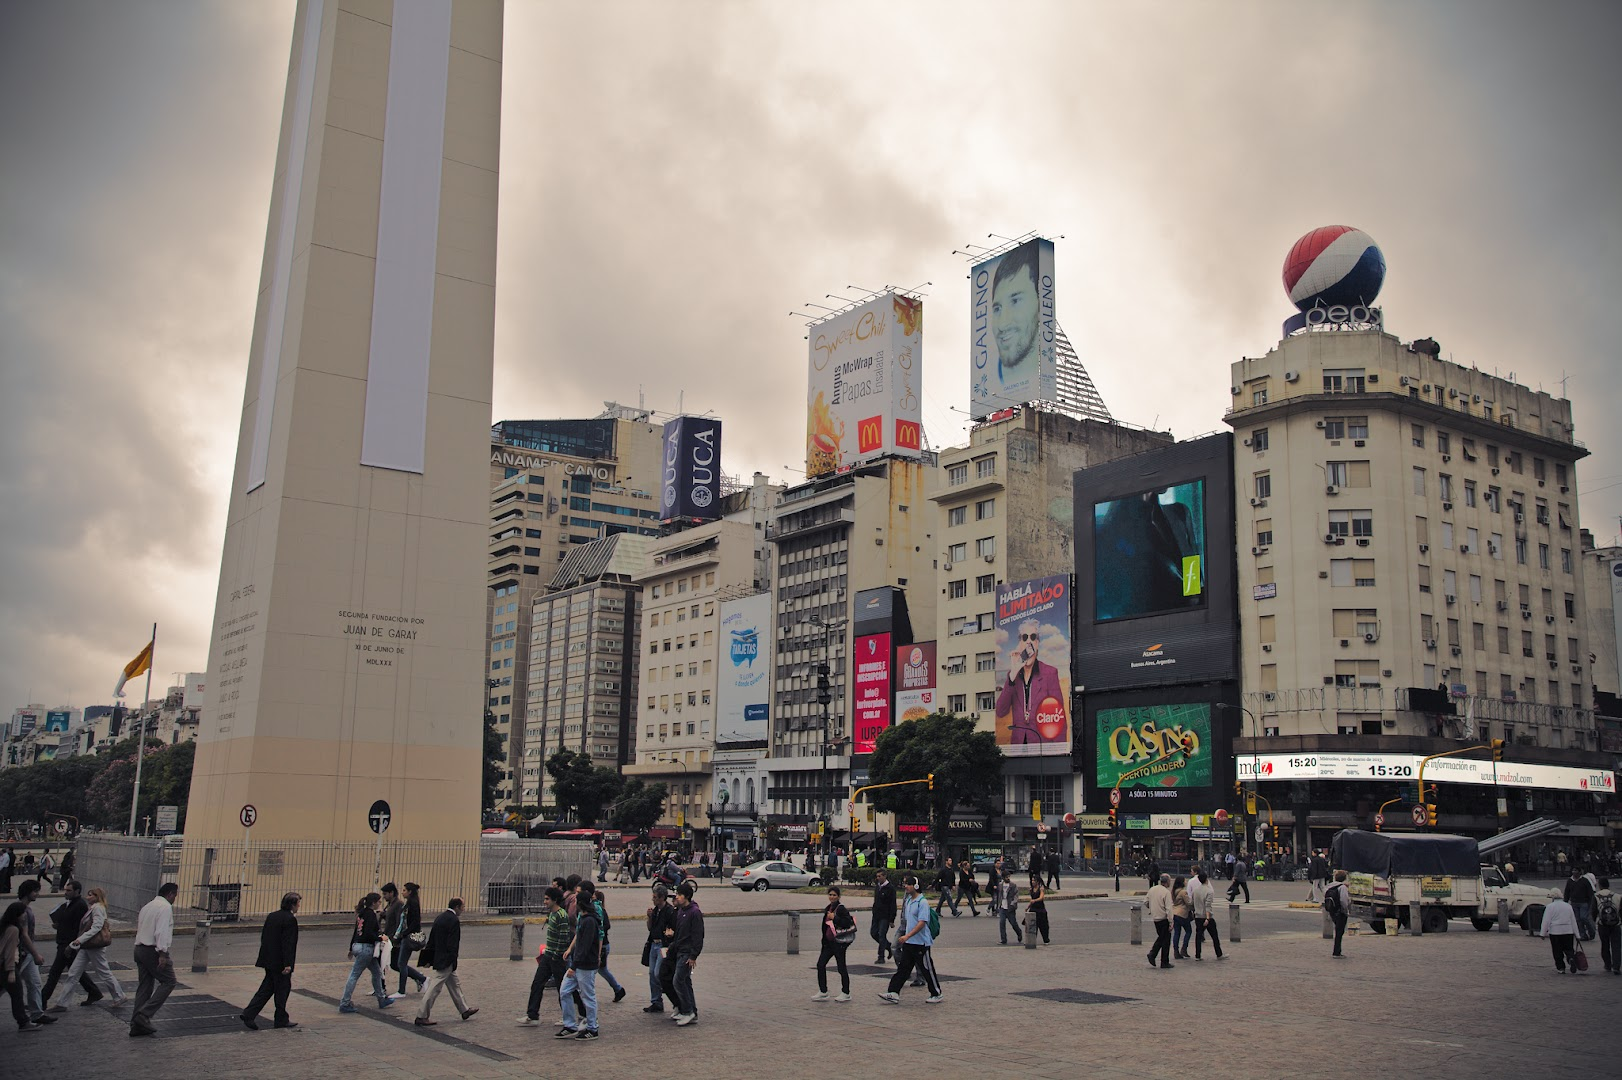 Los Porteños, as Buenos Aires residents are called